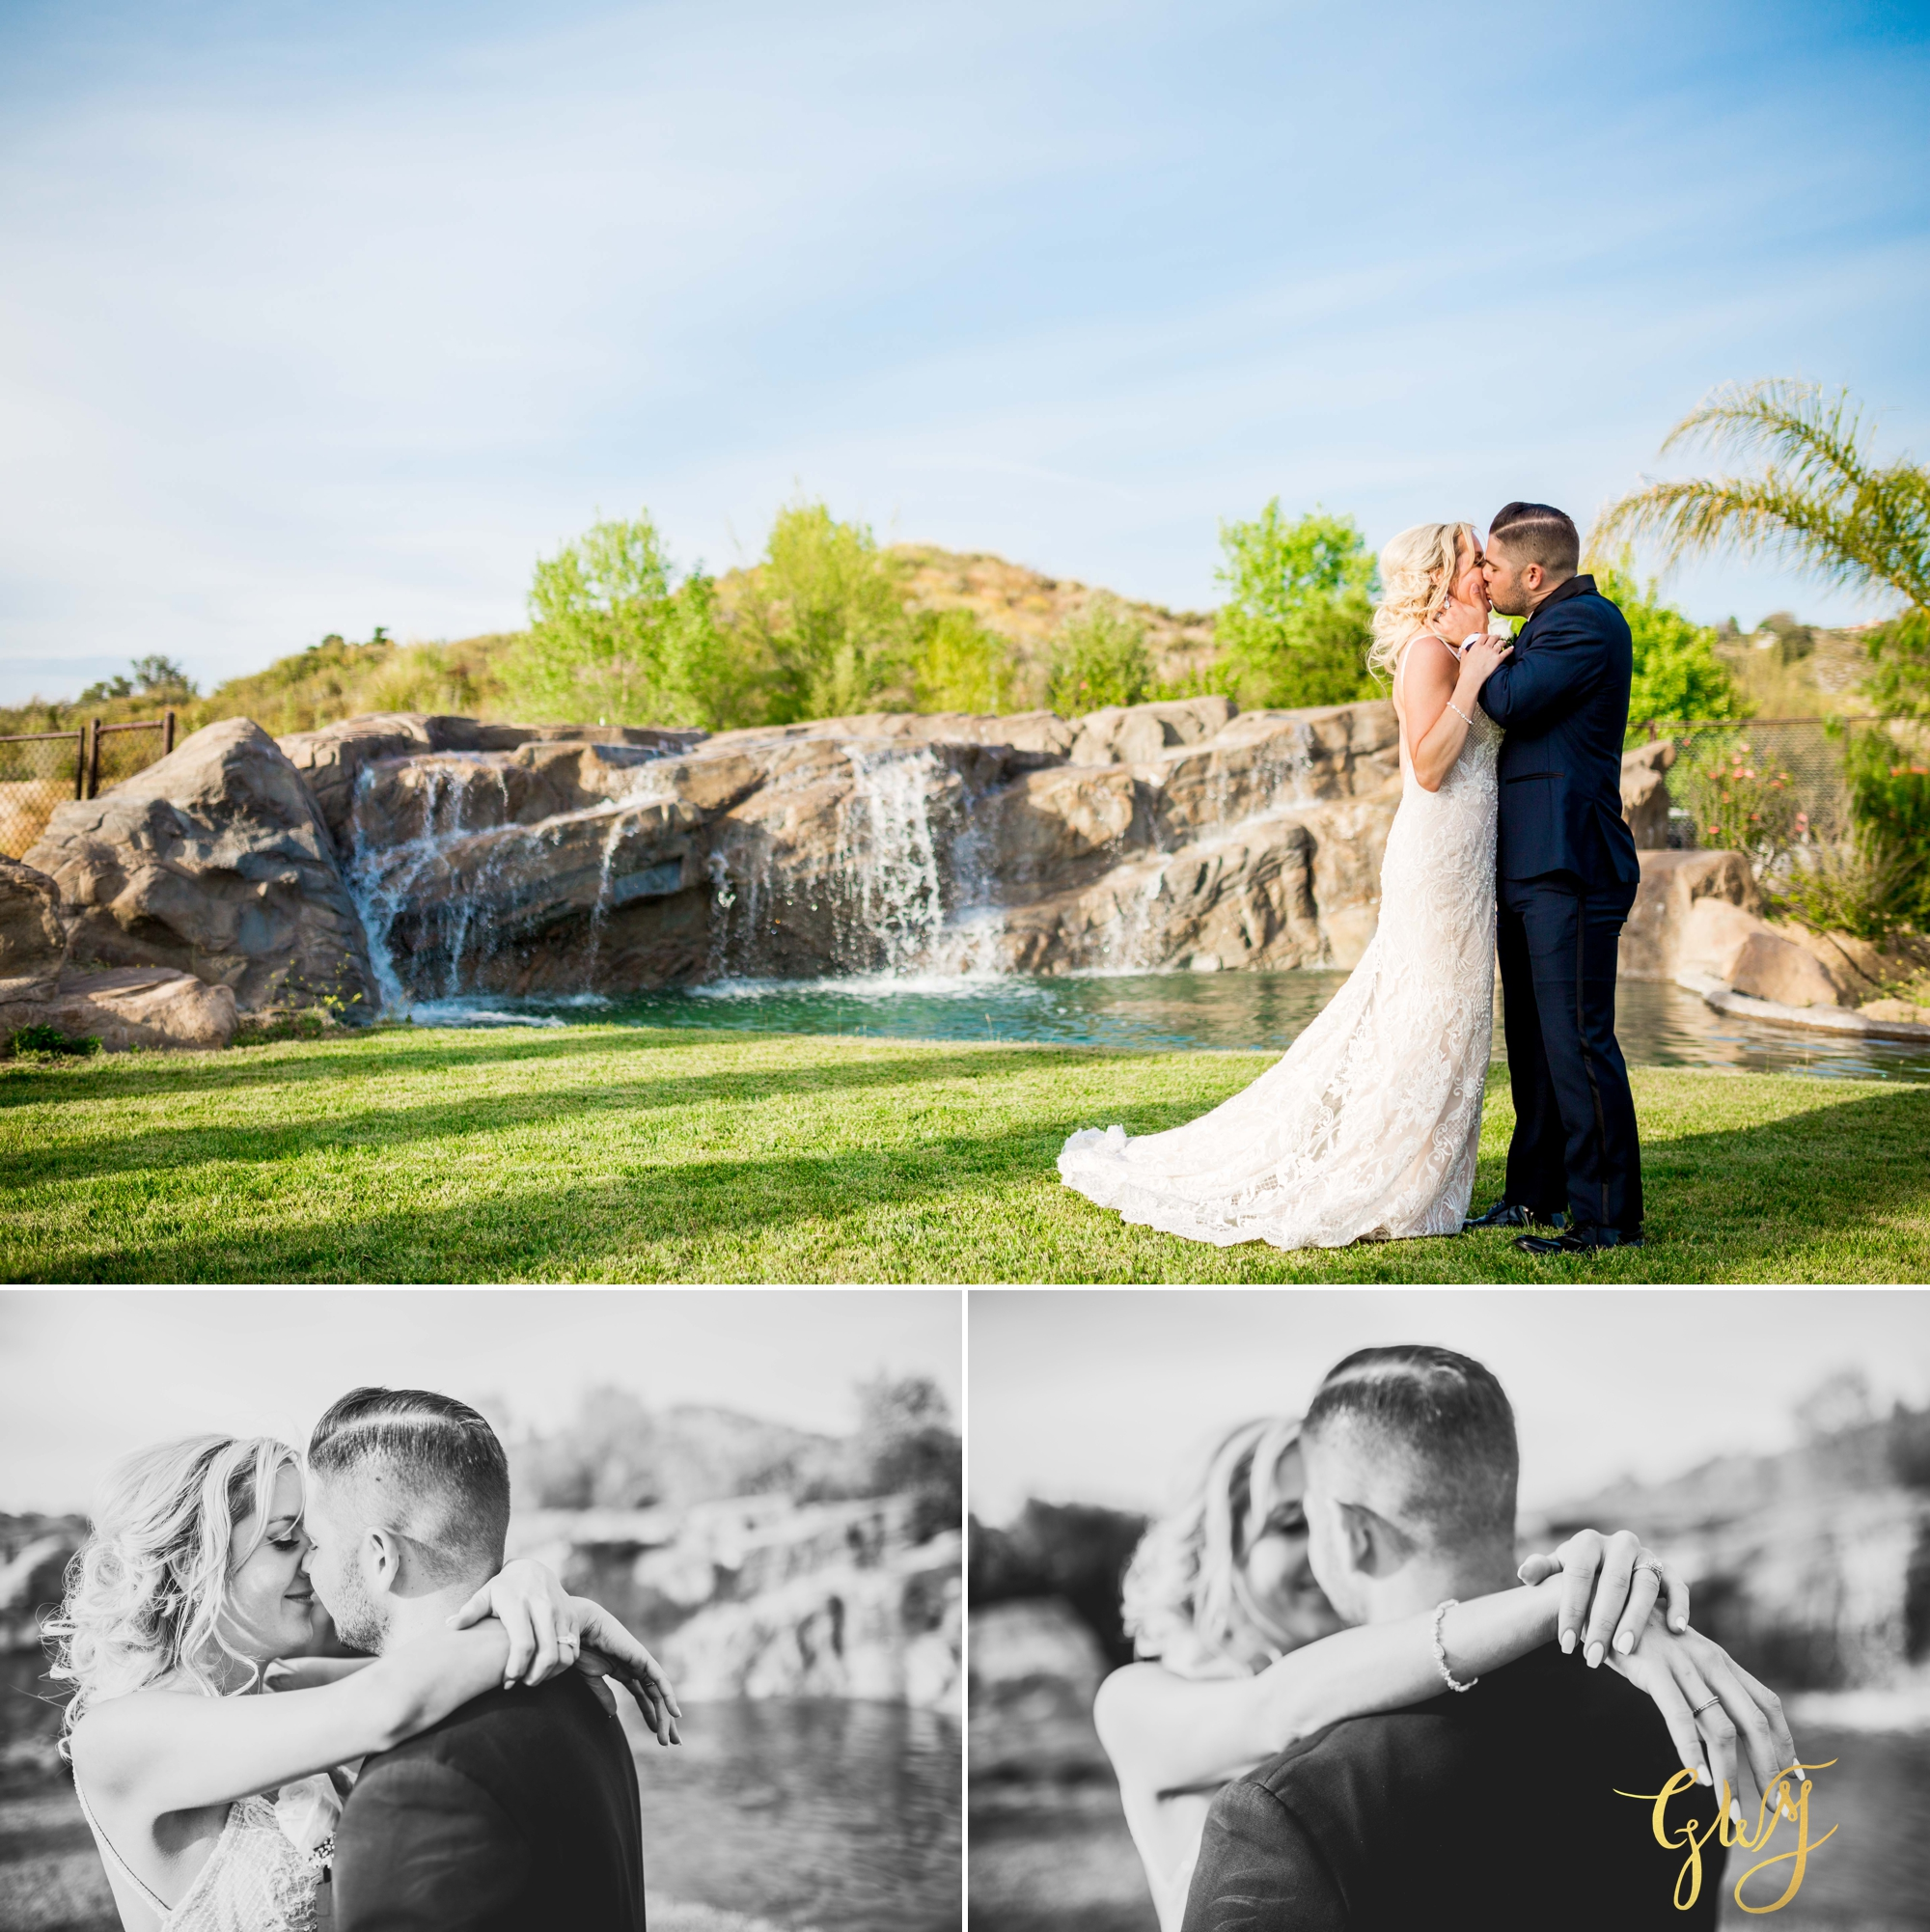 Kristen + Krsto's Romantic Temecula Winery Spring Wedding by Glass Woods Media 41.jpg